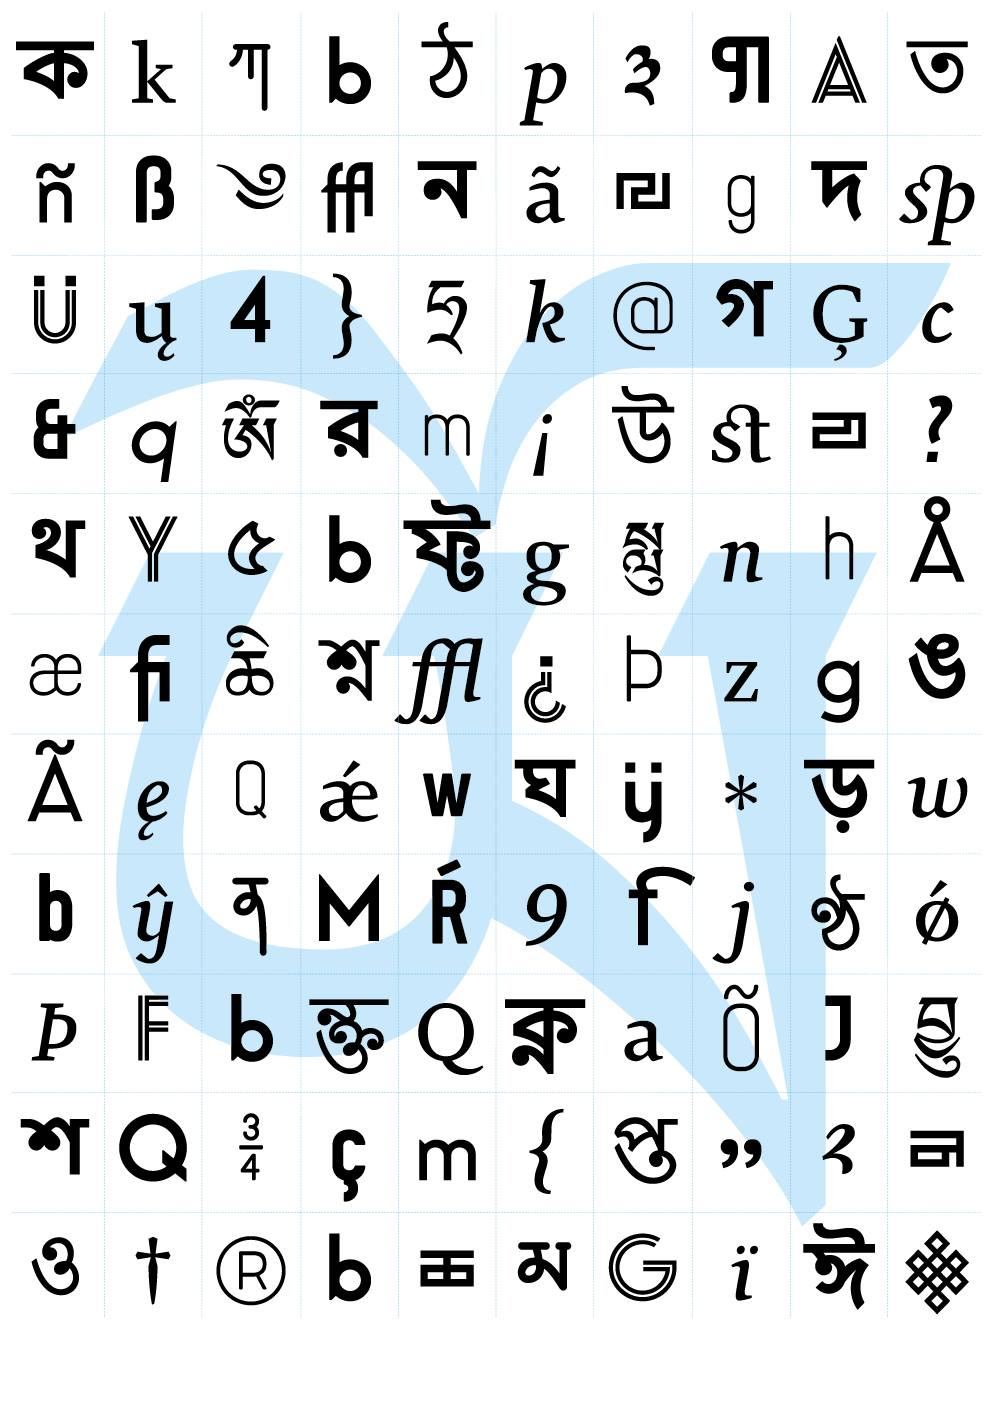 From sound to glyph: the typographic representation of languages